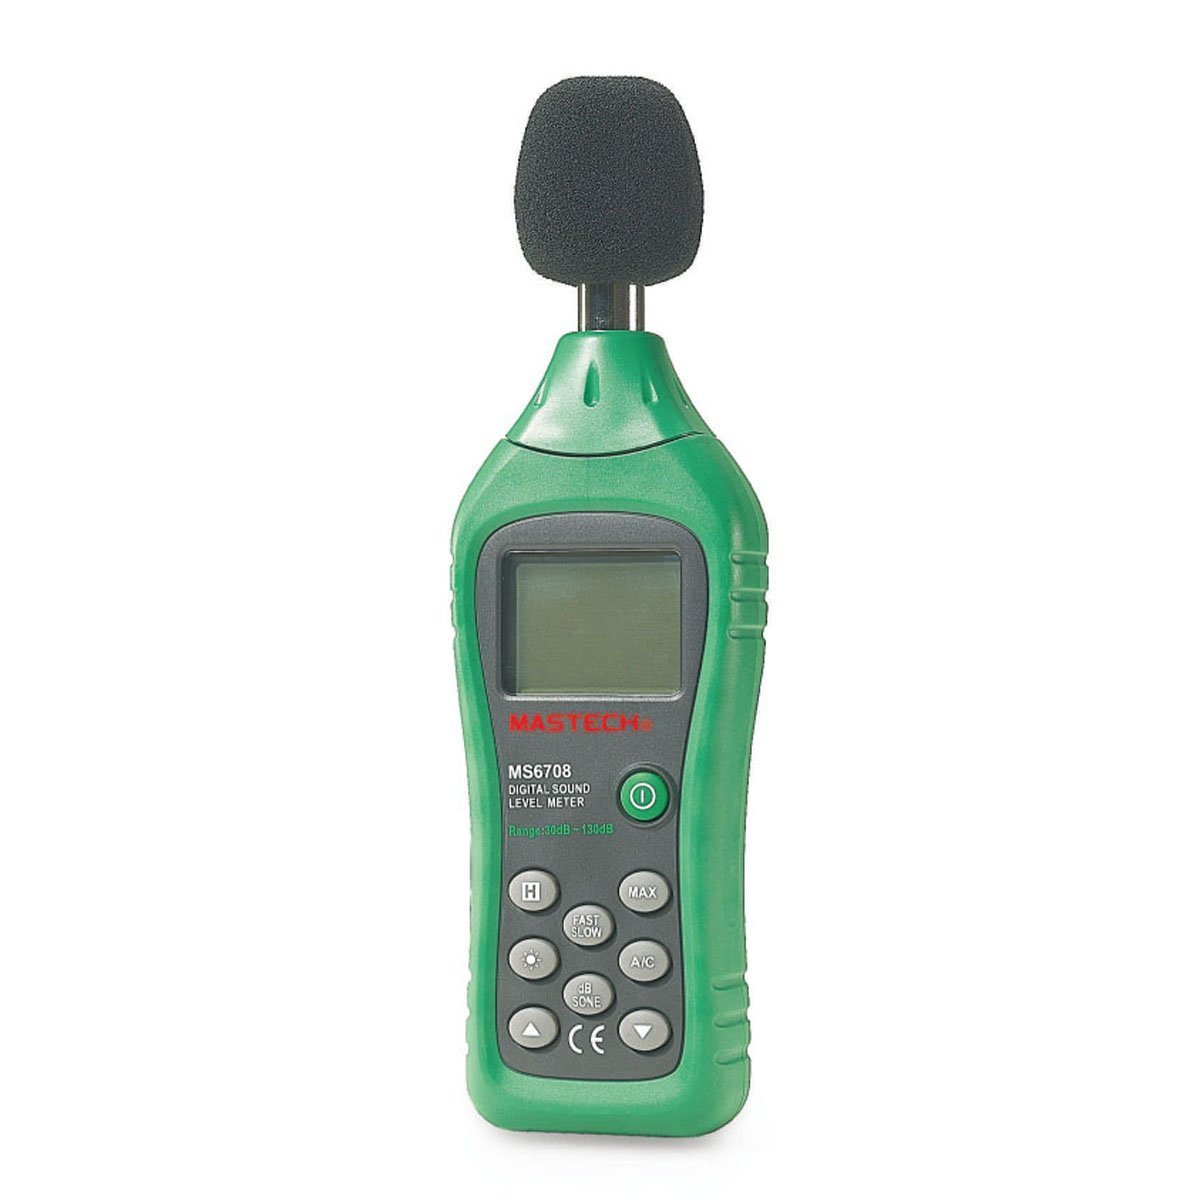 MASTECH MS6708 Digital Sound Level Meter Tester Anti-interference Power Saving Back Light